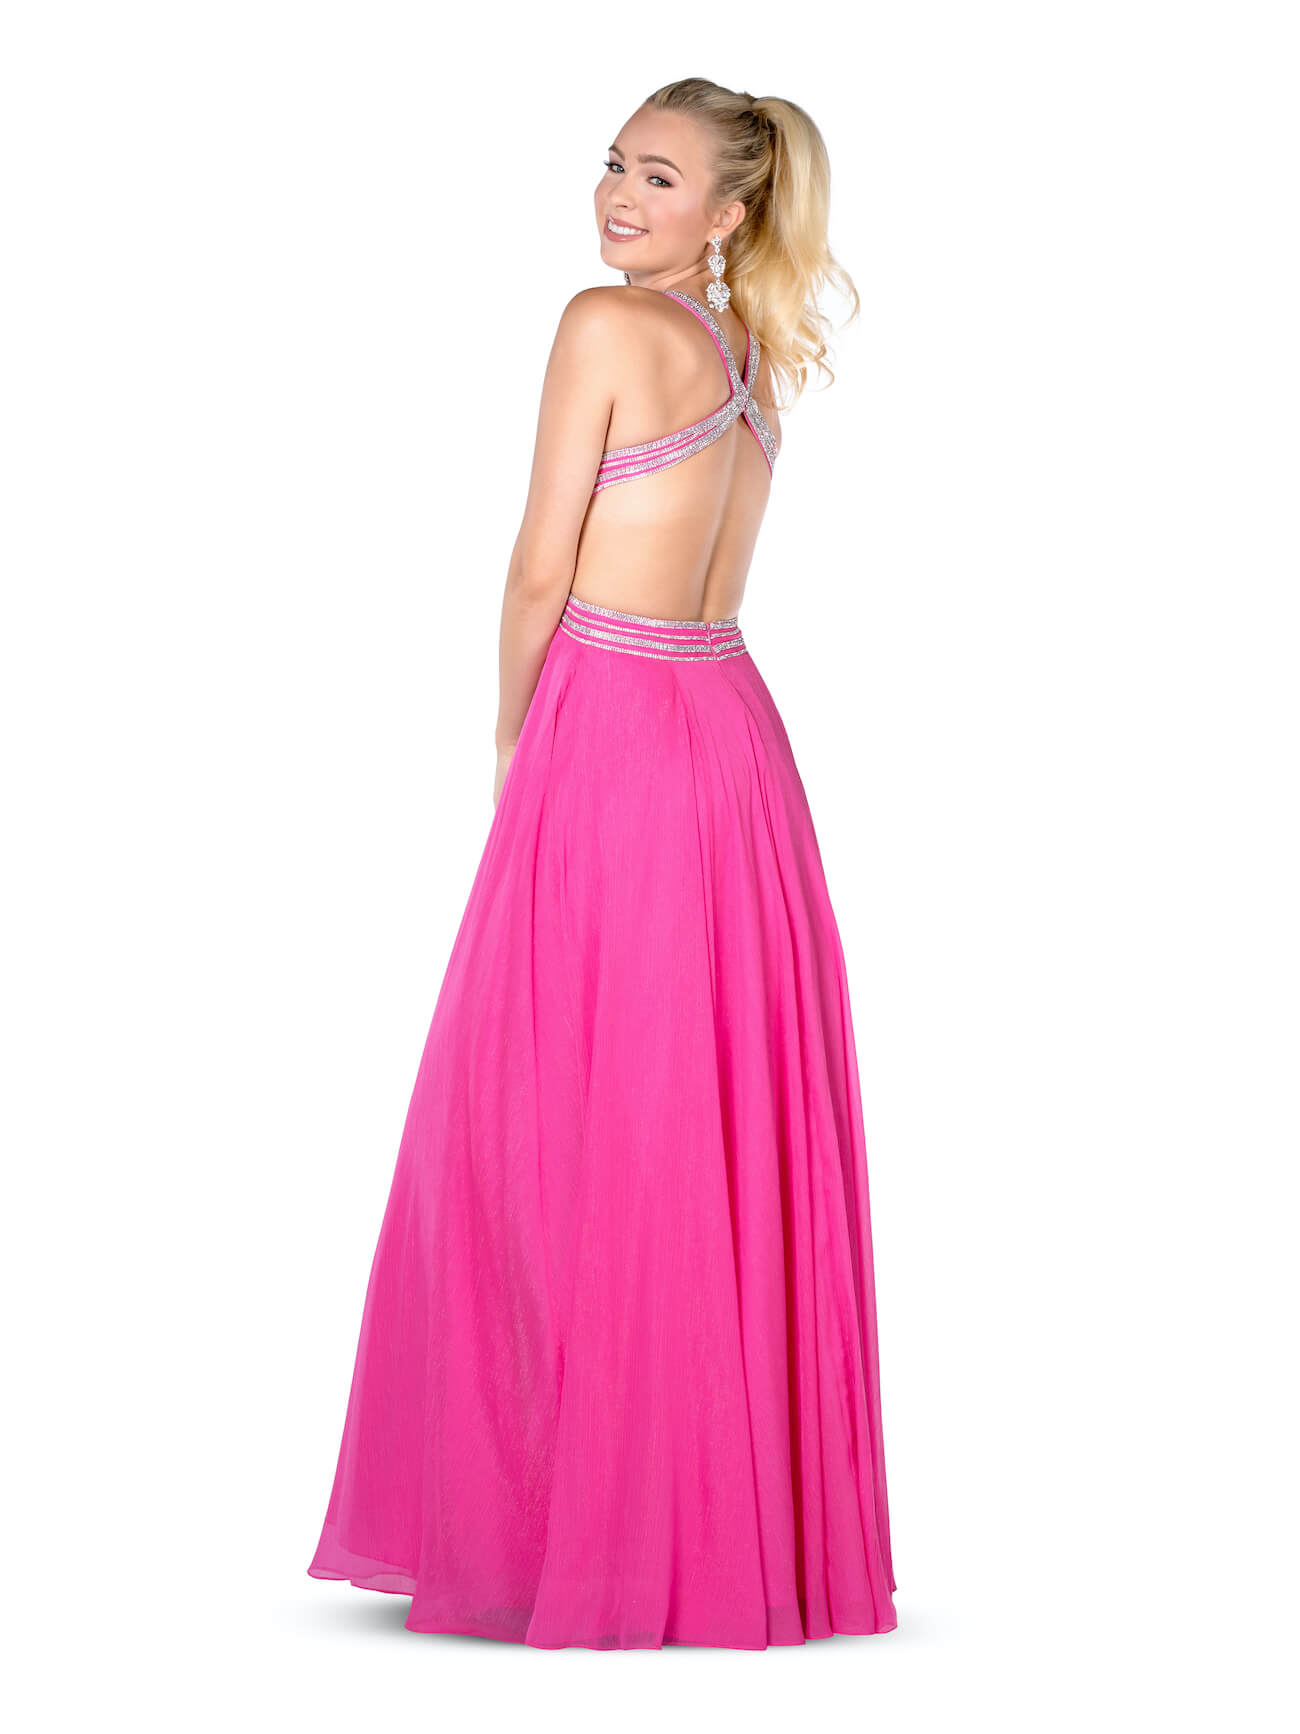 Vienna Pink Size 00 Cut Out A-line Dress on Queenly